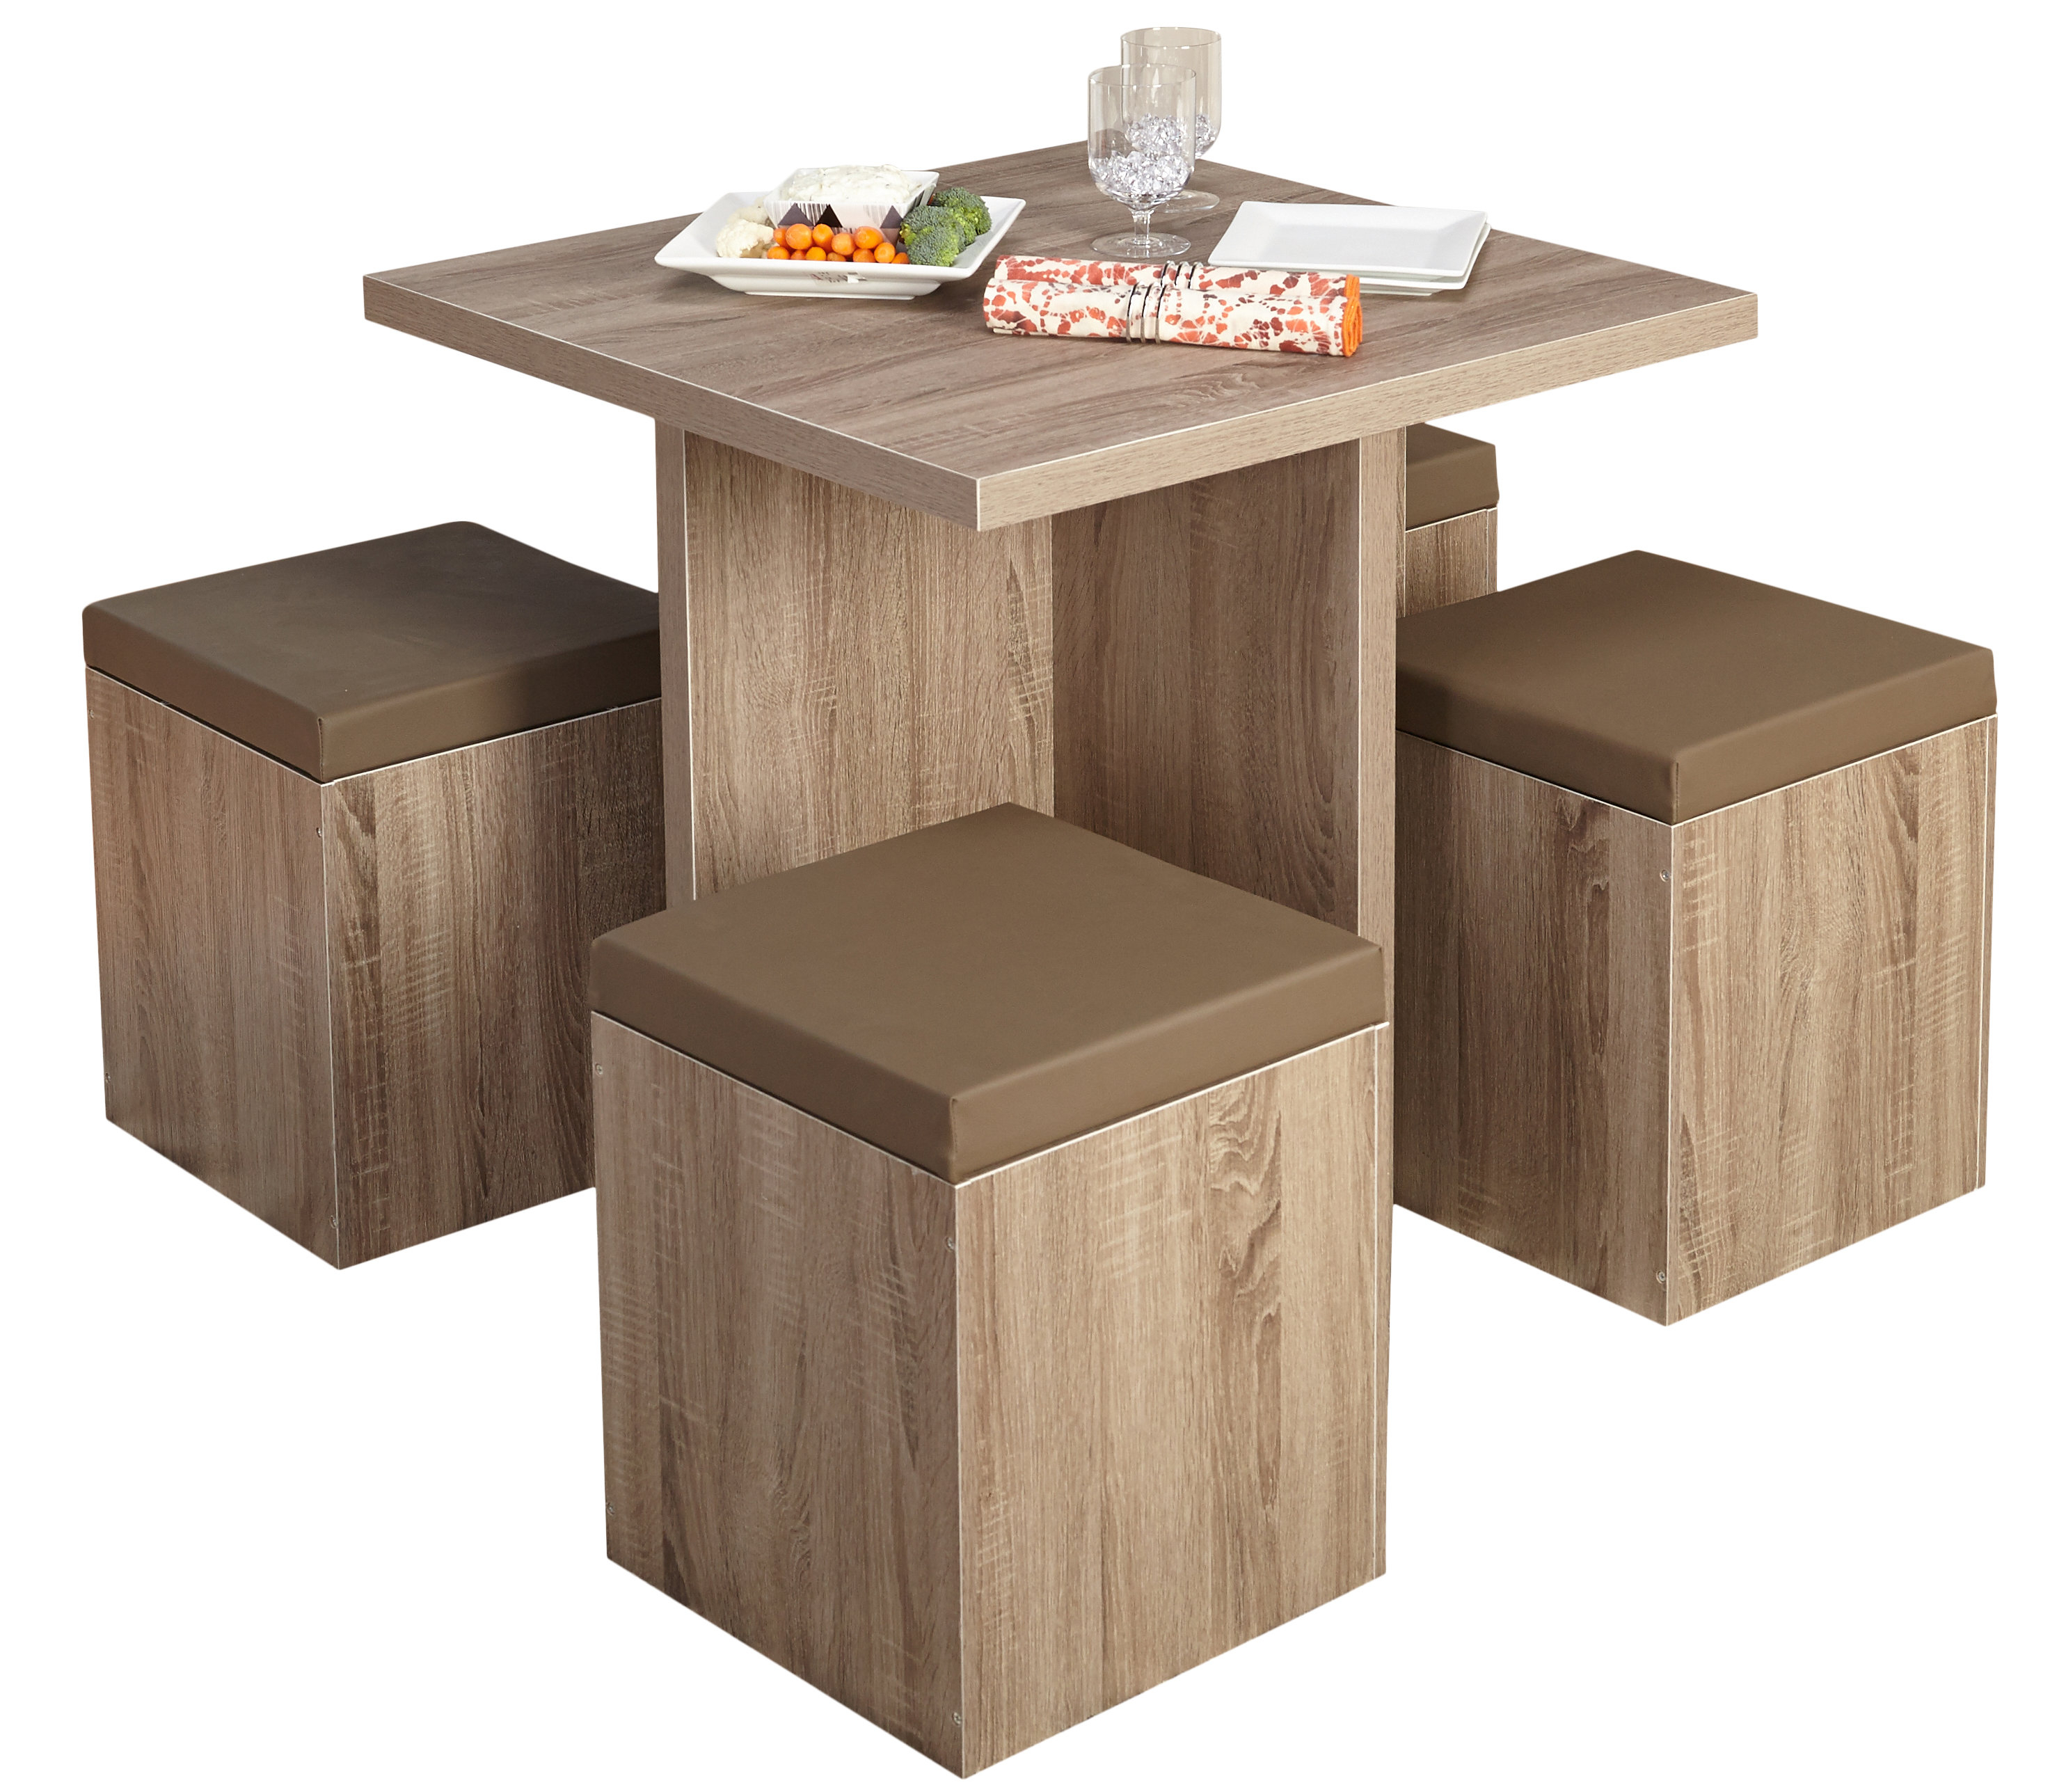 Badillo 5 Piece Dining Set Intended For Most Recently Released Partin 3 Piece Dining Sets (Image 4 of 20)